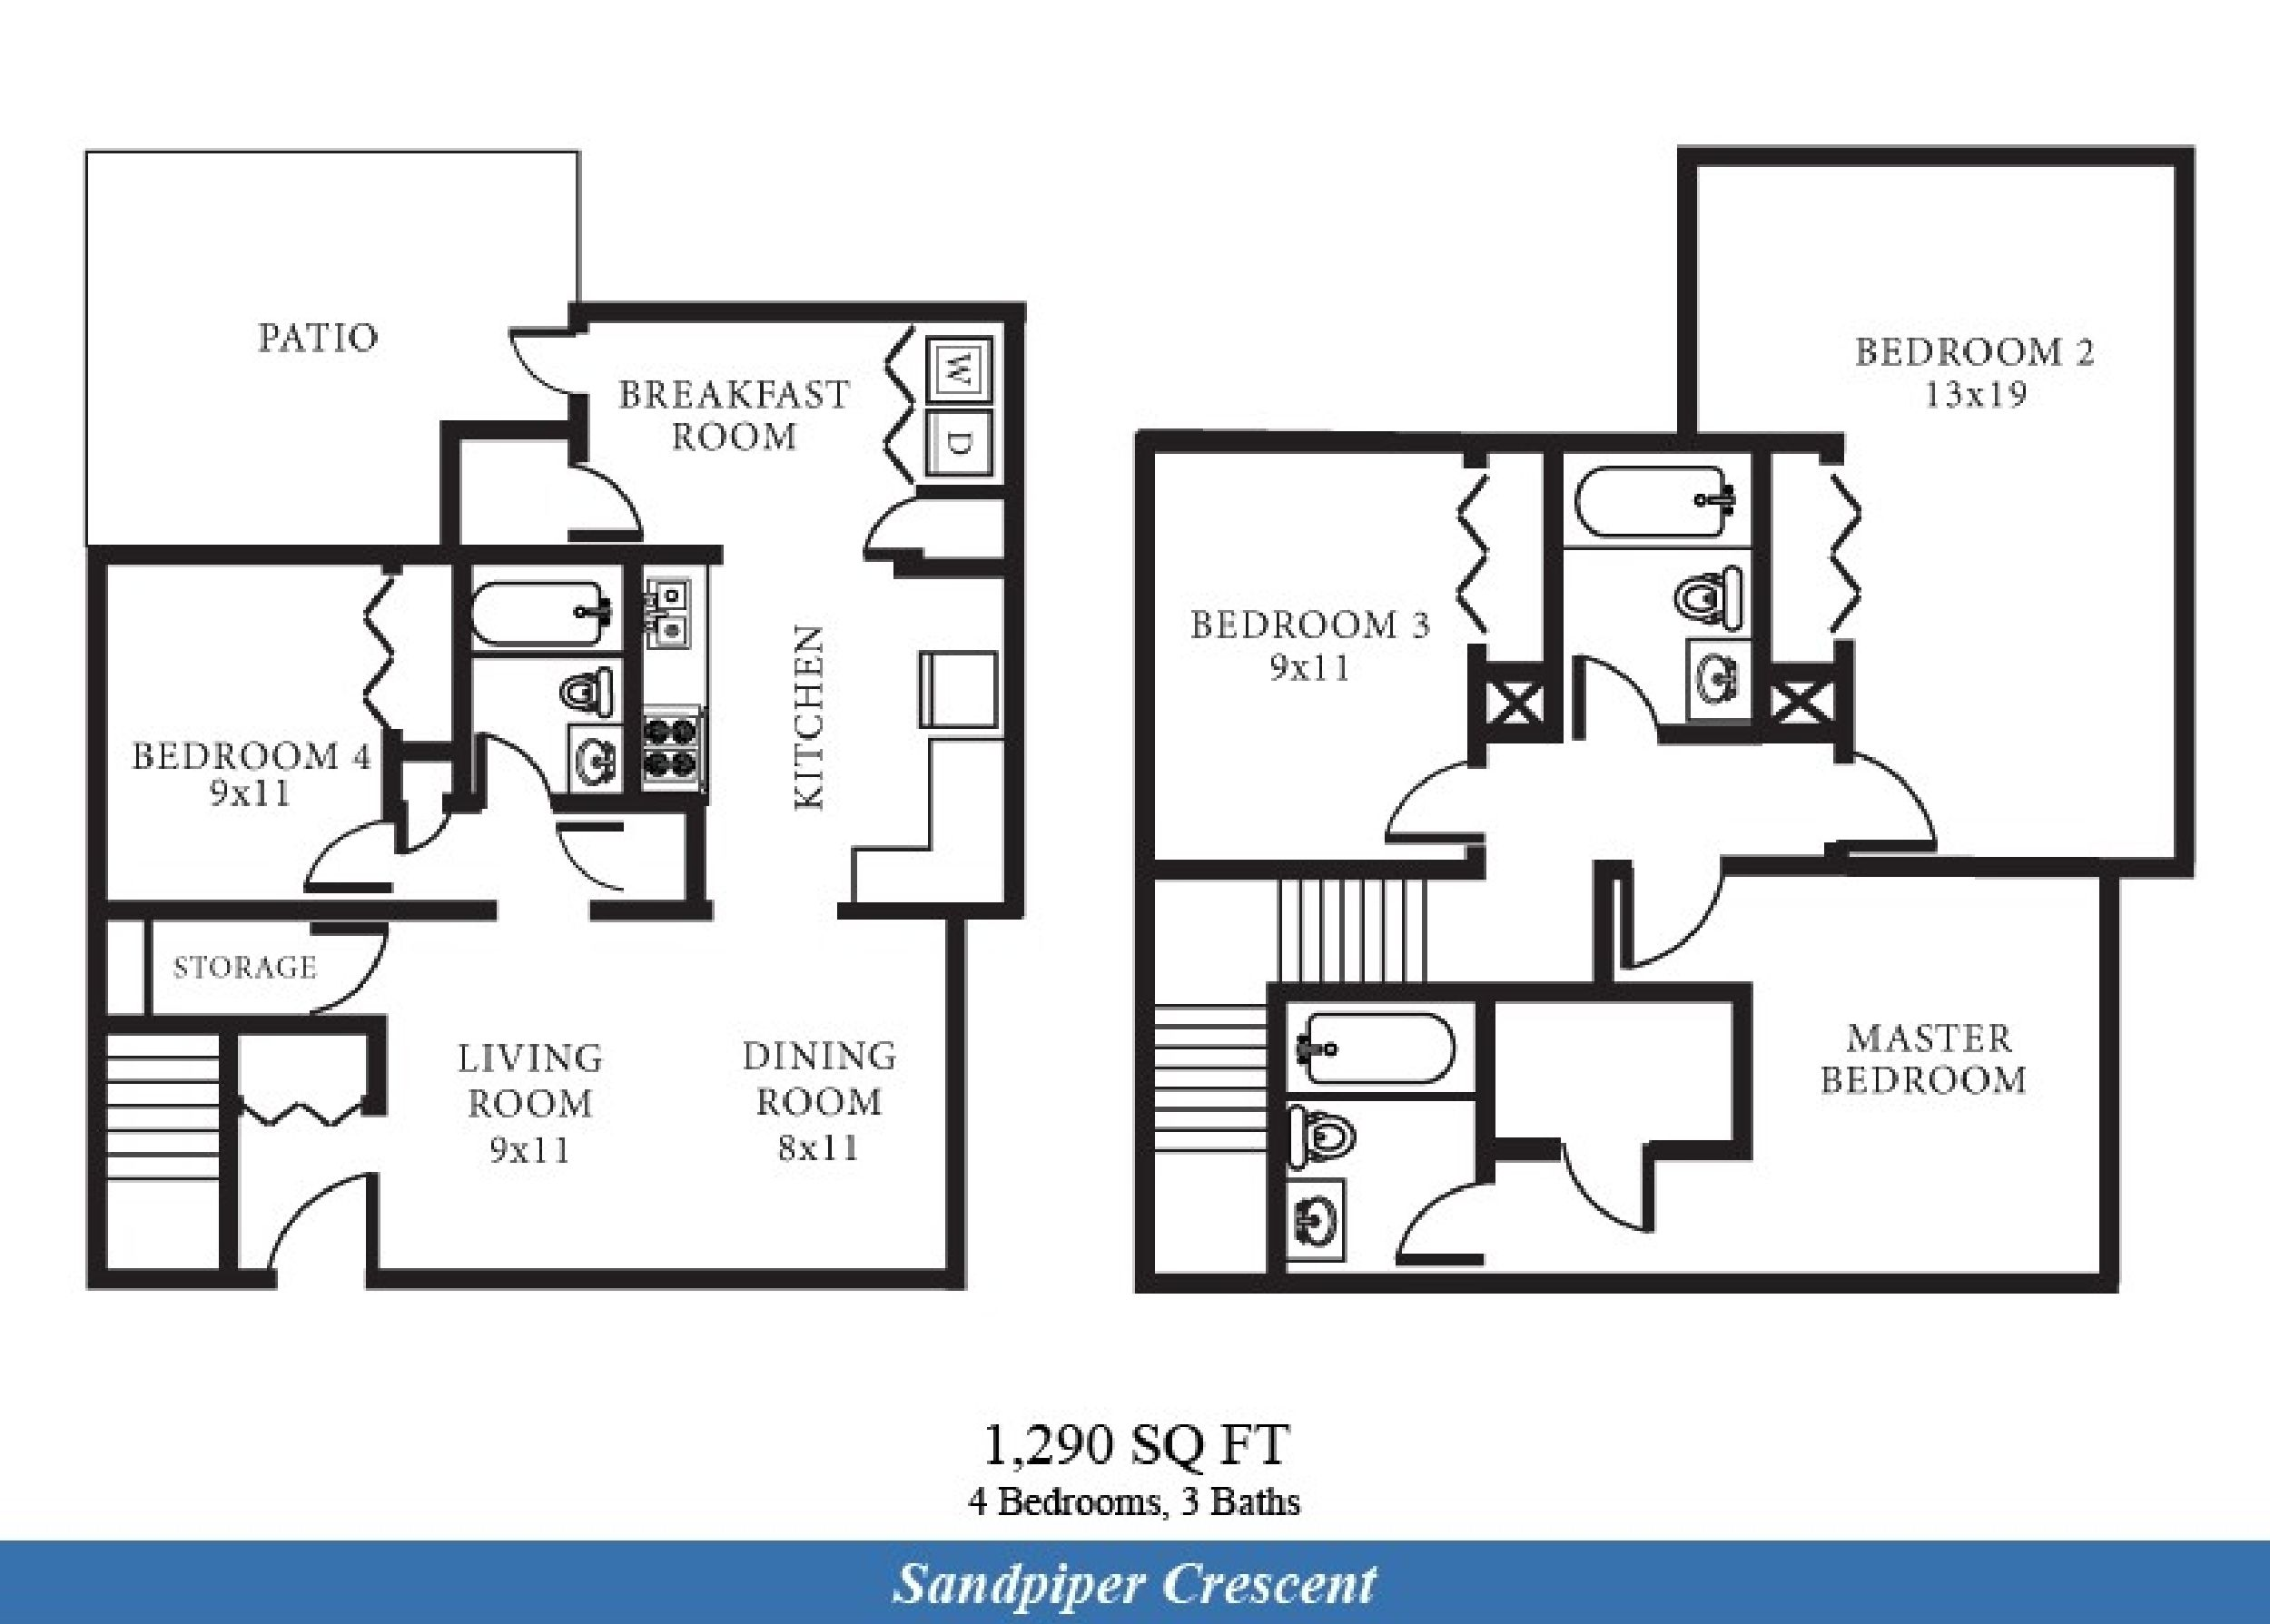 2be5e7e1a4e3f976f1311c5b4cf3a559 Lincoln Townhouse Floor Plans on townhouse plans for narrow lots, townhouse elevations, townhouse design, townhouse master plan, townhouse deck plans, townhouse renderings, townhouse drawings, townhouse blueprints, townhouse construction, townhouse layout, townhouse luxury interior, townhouse home plans with basement, garage apartment plans, townhouse community, 2 car garage duplex plans, townhouse rentals,